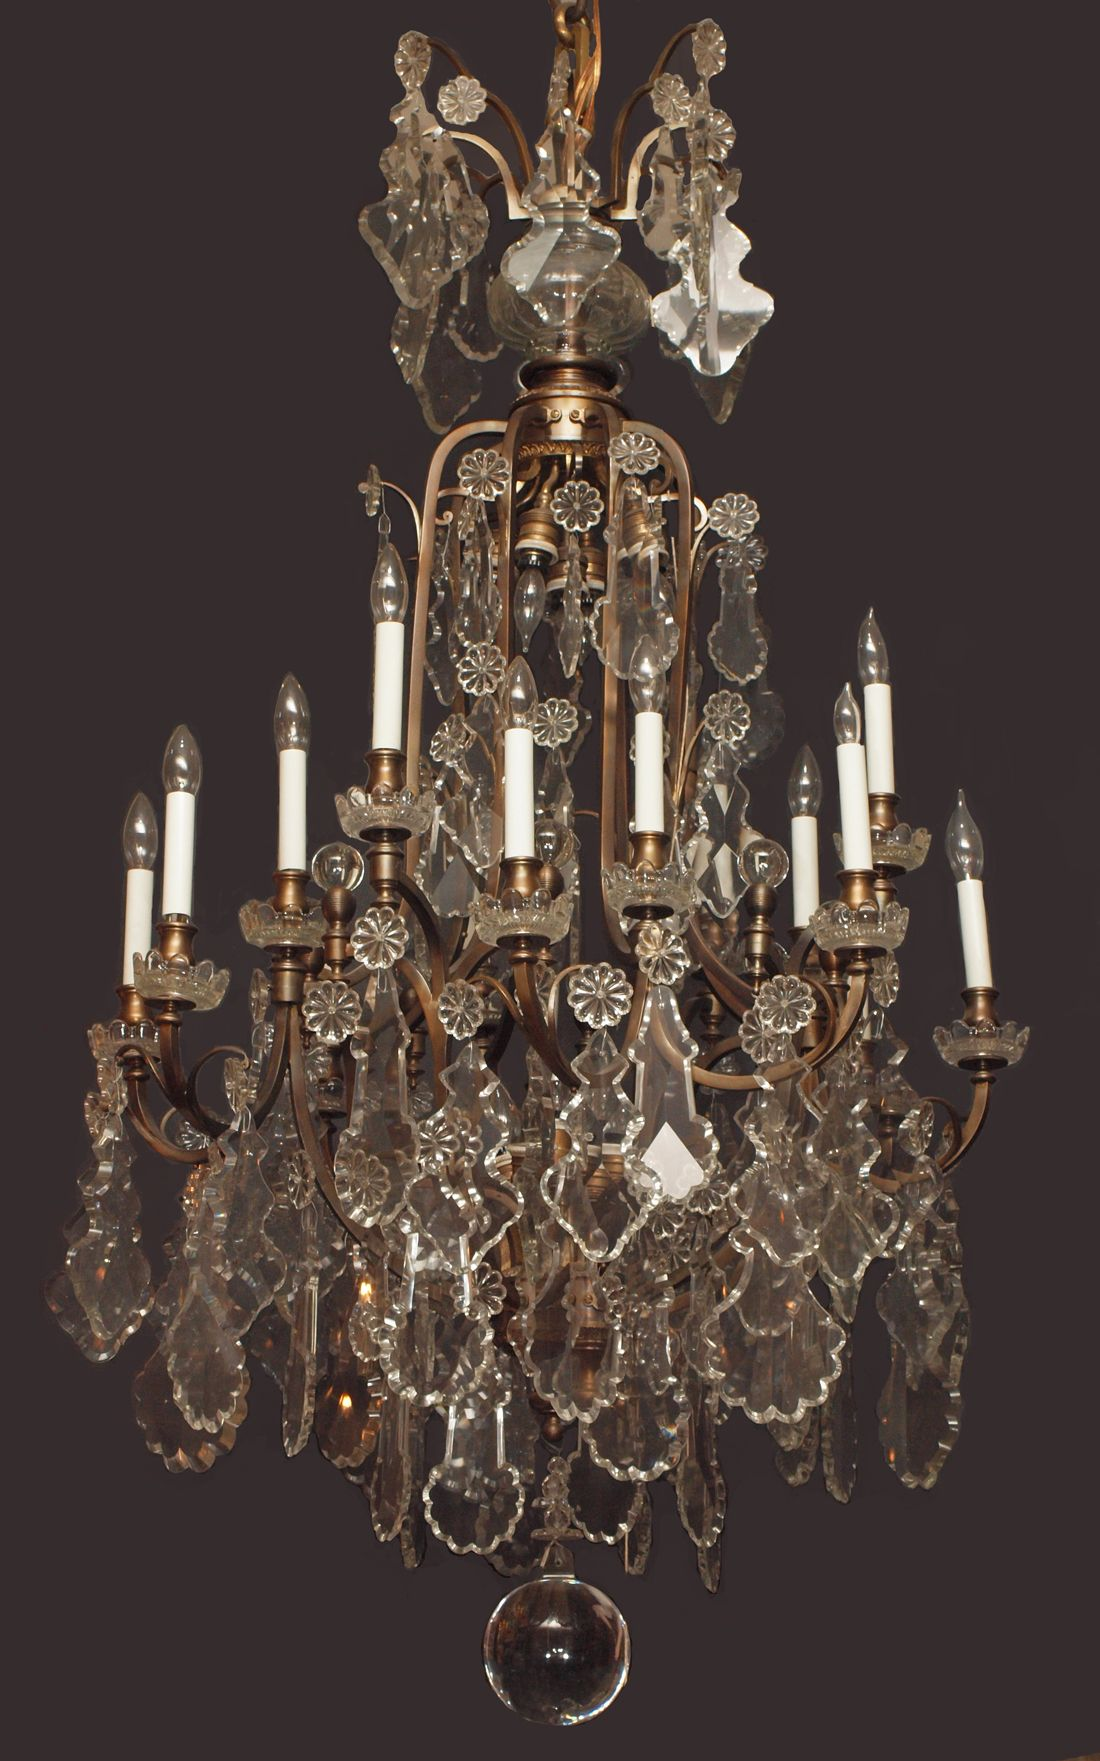 Chandeliers - Chandeliers Baccarat Crystal, Chandeliers And Crystals